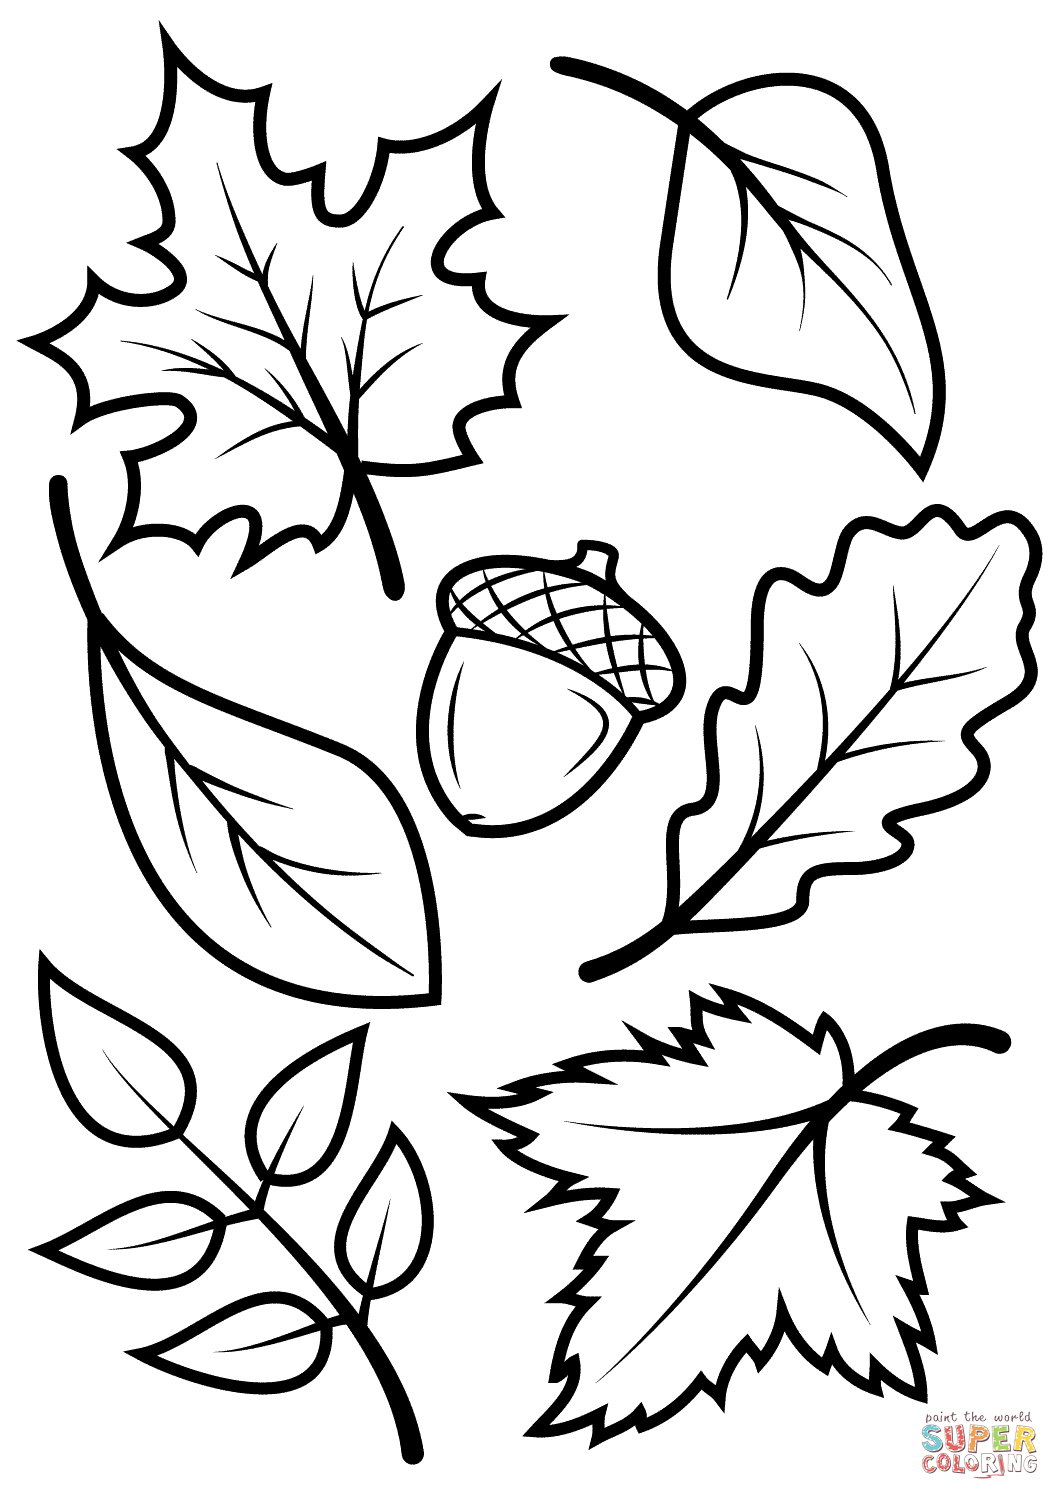 Fall Leaves And Acorn Coloring Page | Free Printable Coloring Pages - Acorn Template Free Printable